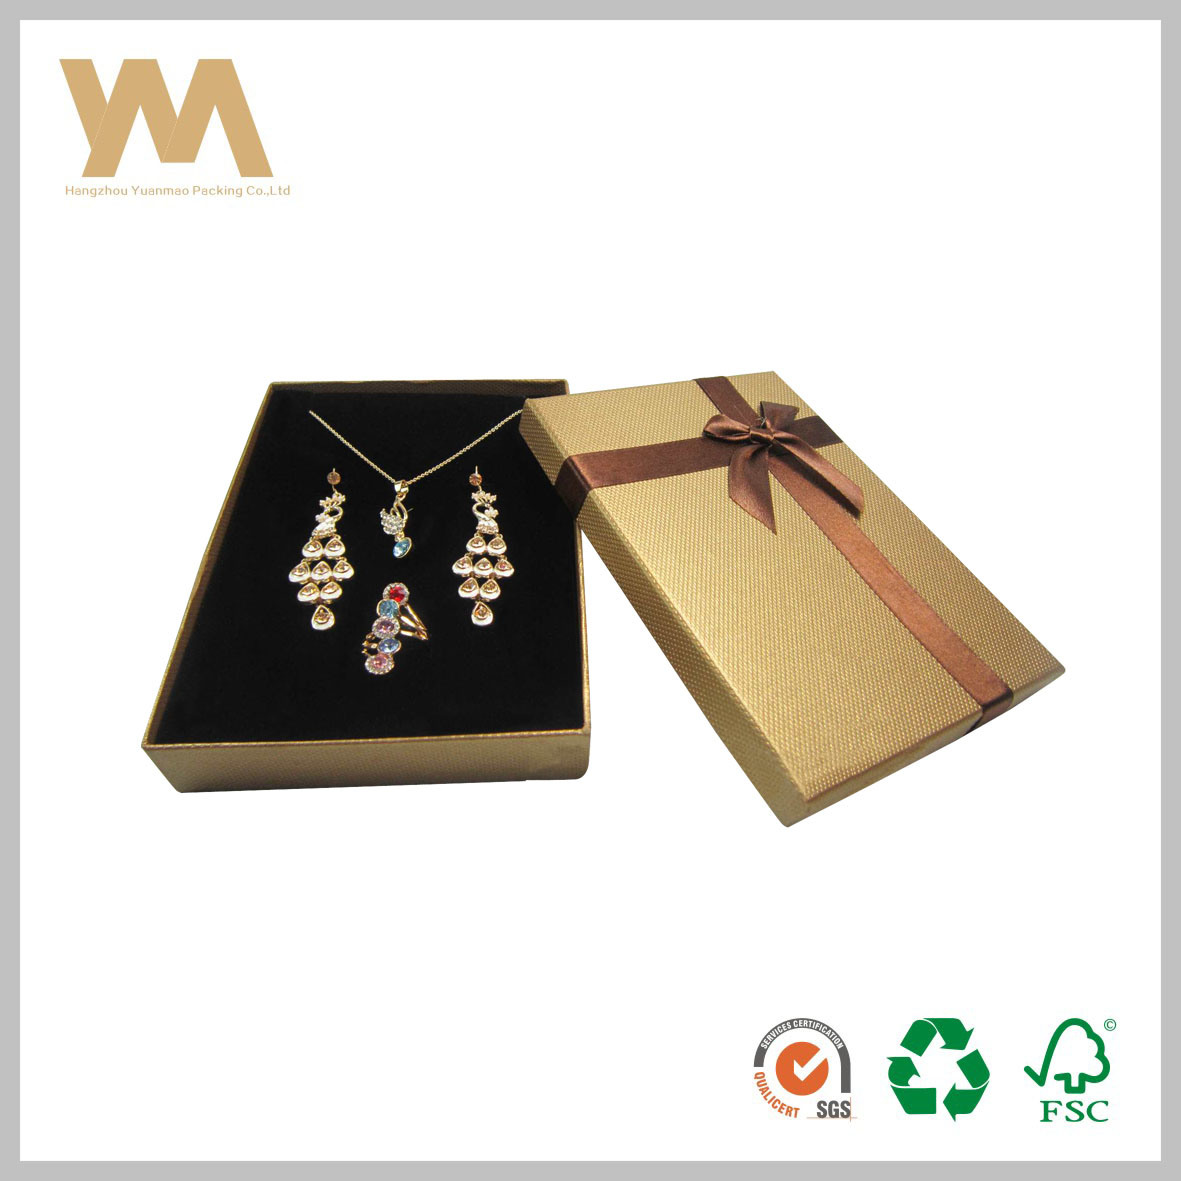 Hot Item Customised Wholesale Luxurious Packaging Cardboard Paper Gift Boxes Custom Gift Box Jewelry Gift Boxes On Sale